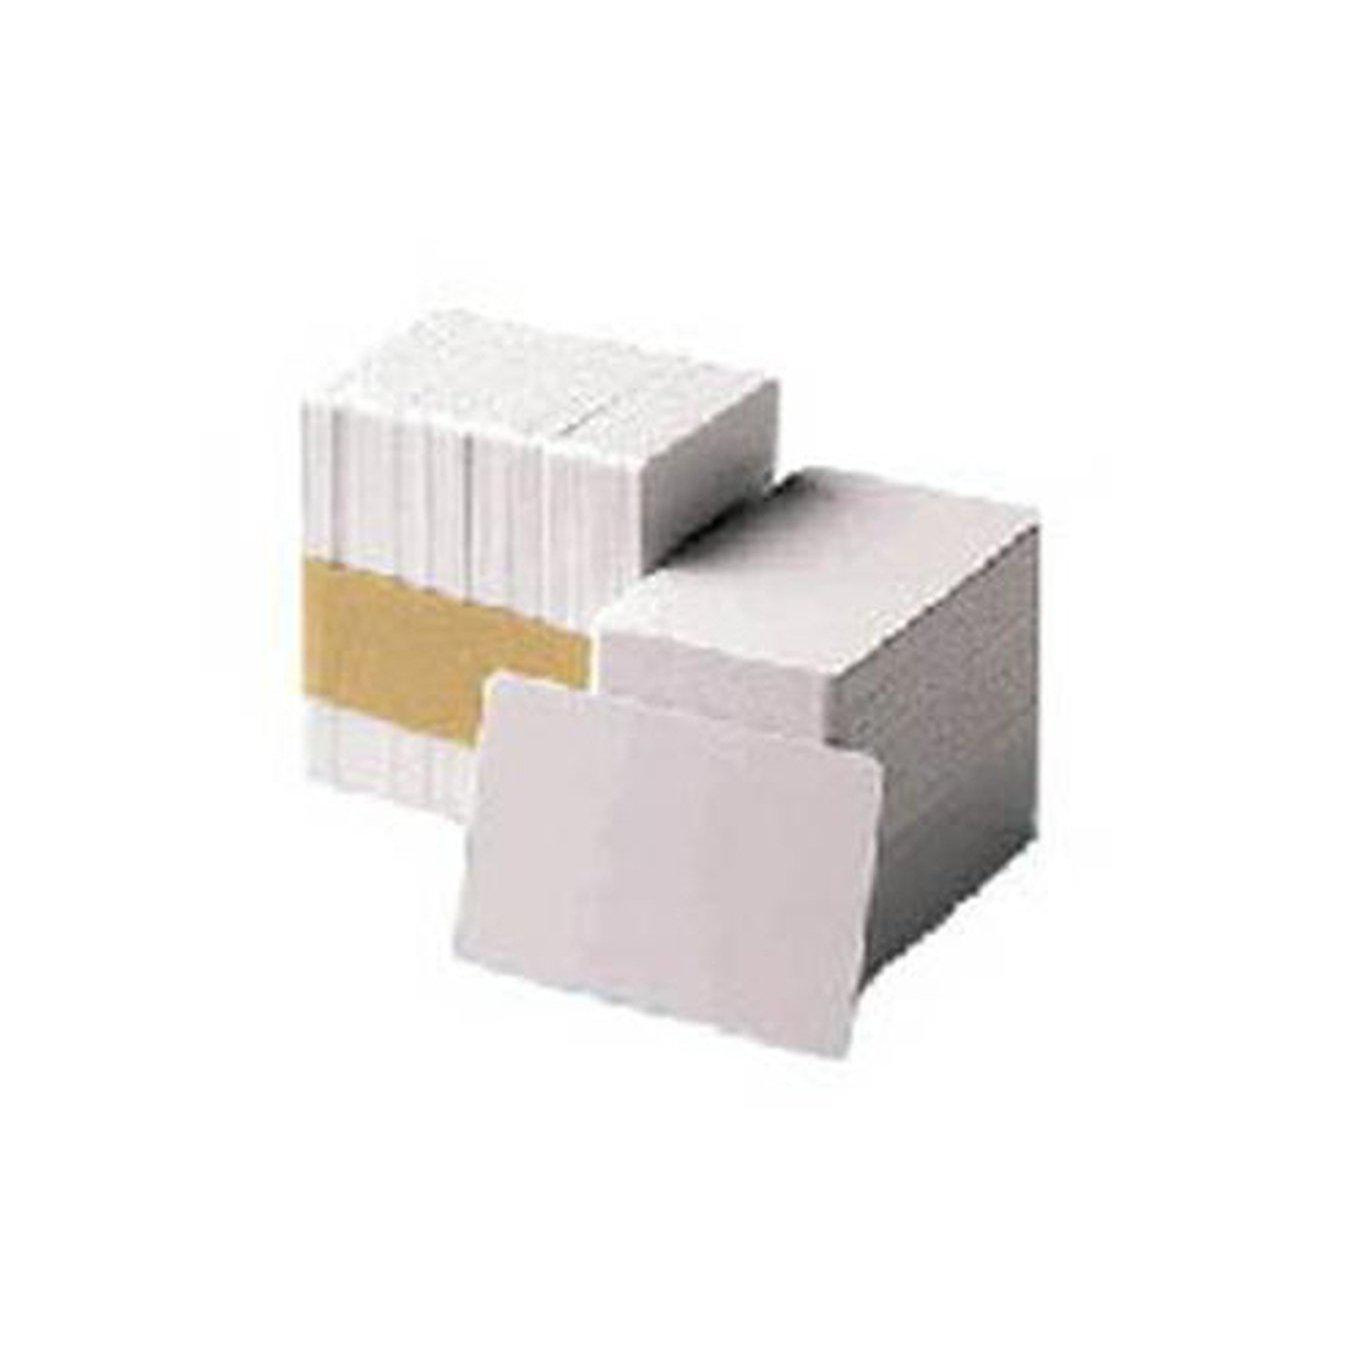 Zebra Premier PVC Blank Cards CR80 size, 30 mil, Box of 500, White | 104523-111 Consumable Zebra